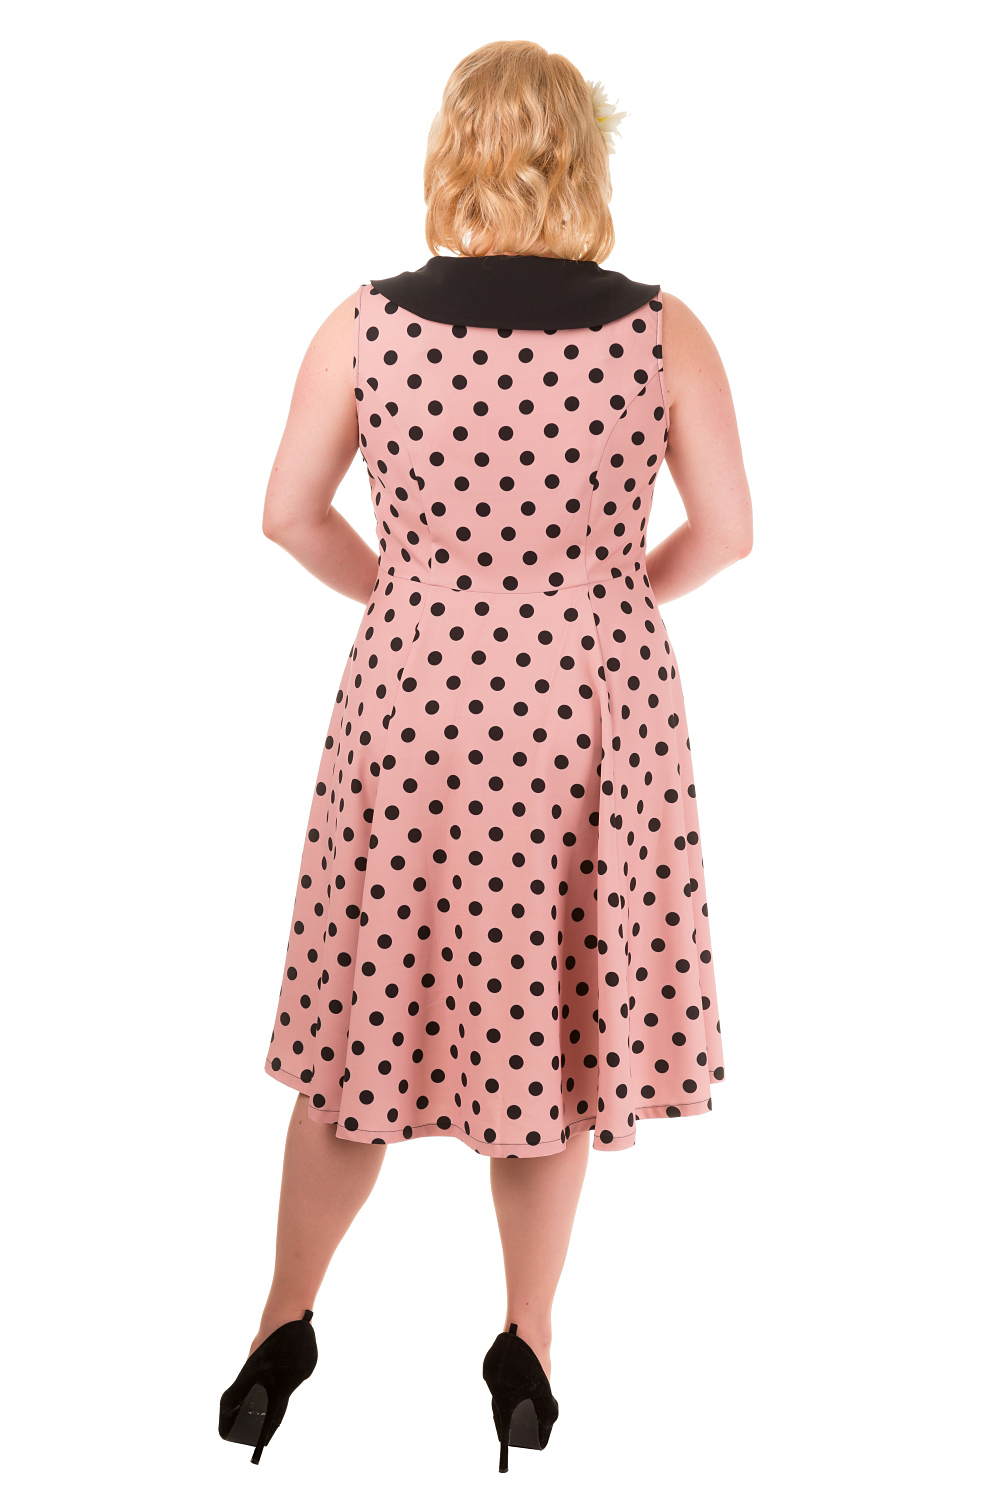 Banned Pink Vintage Rival 40s Plus Size Dress